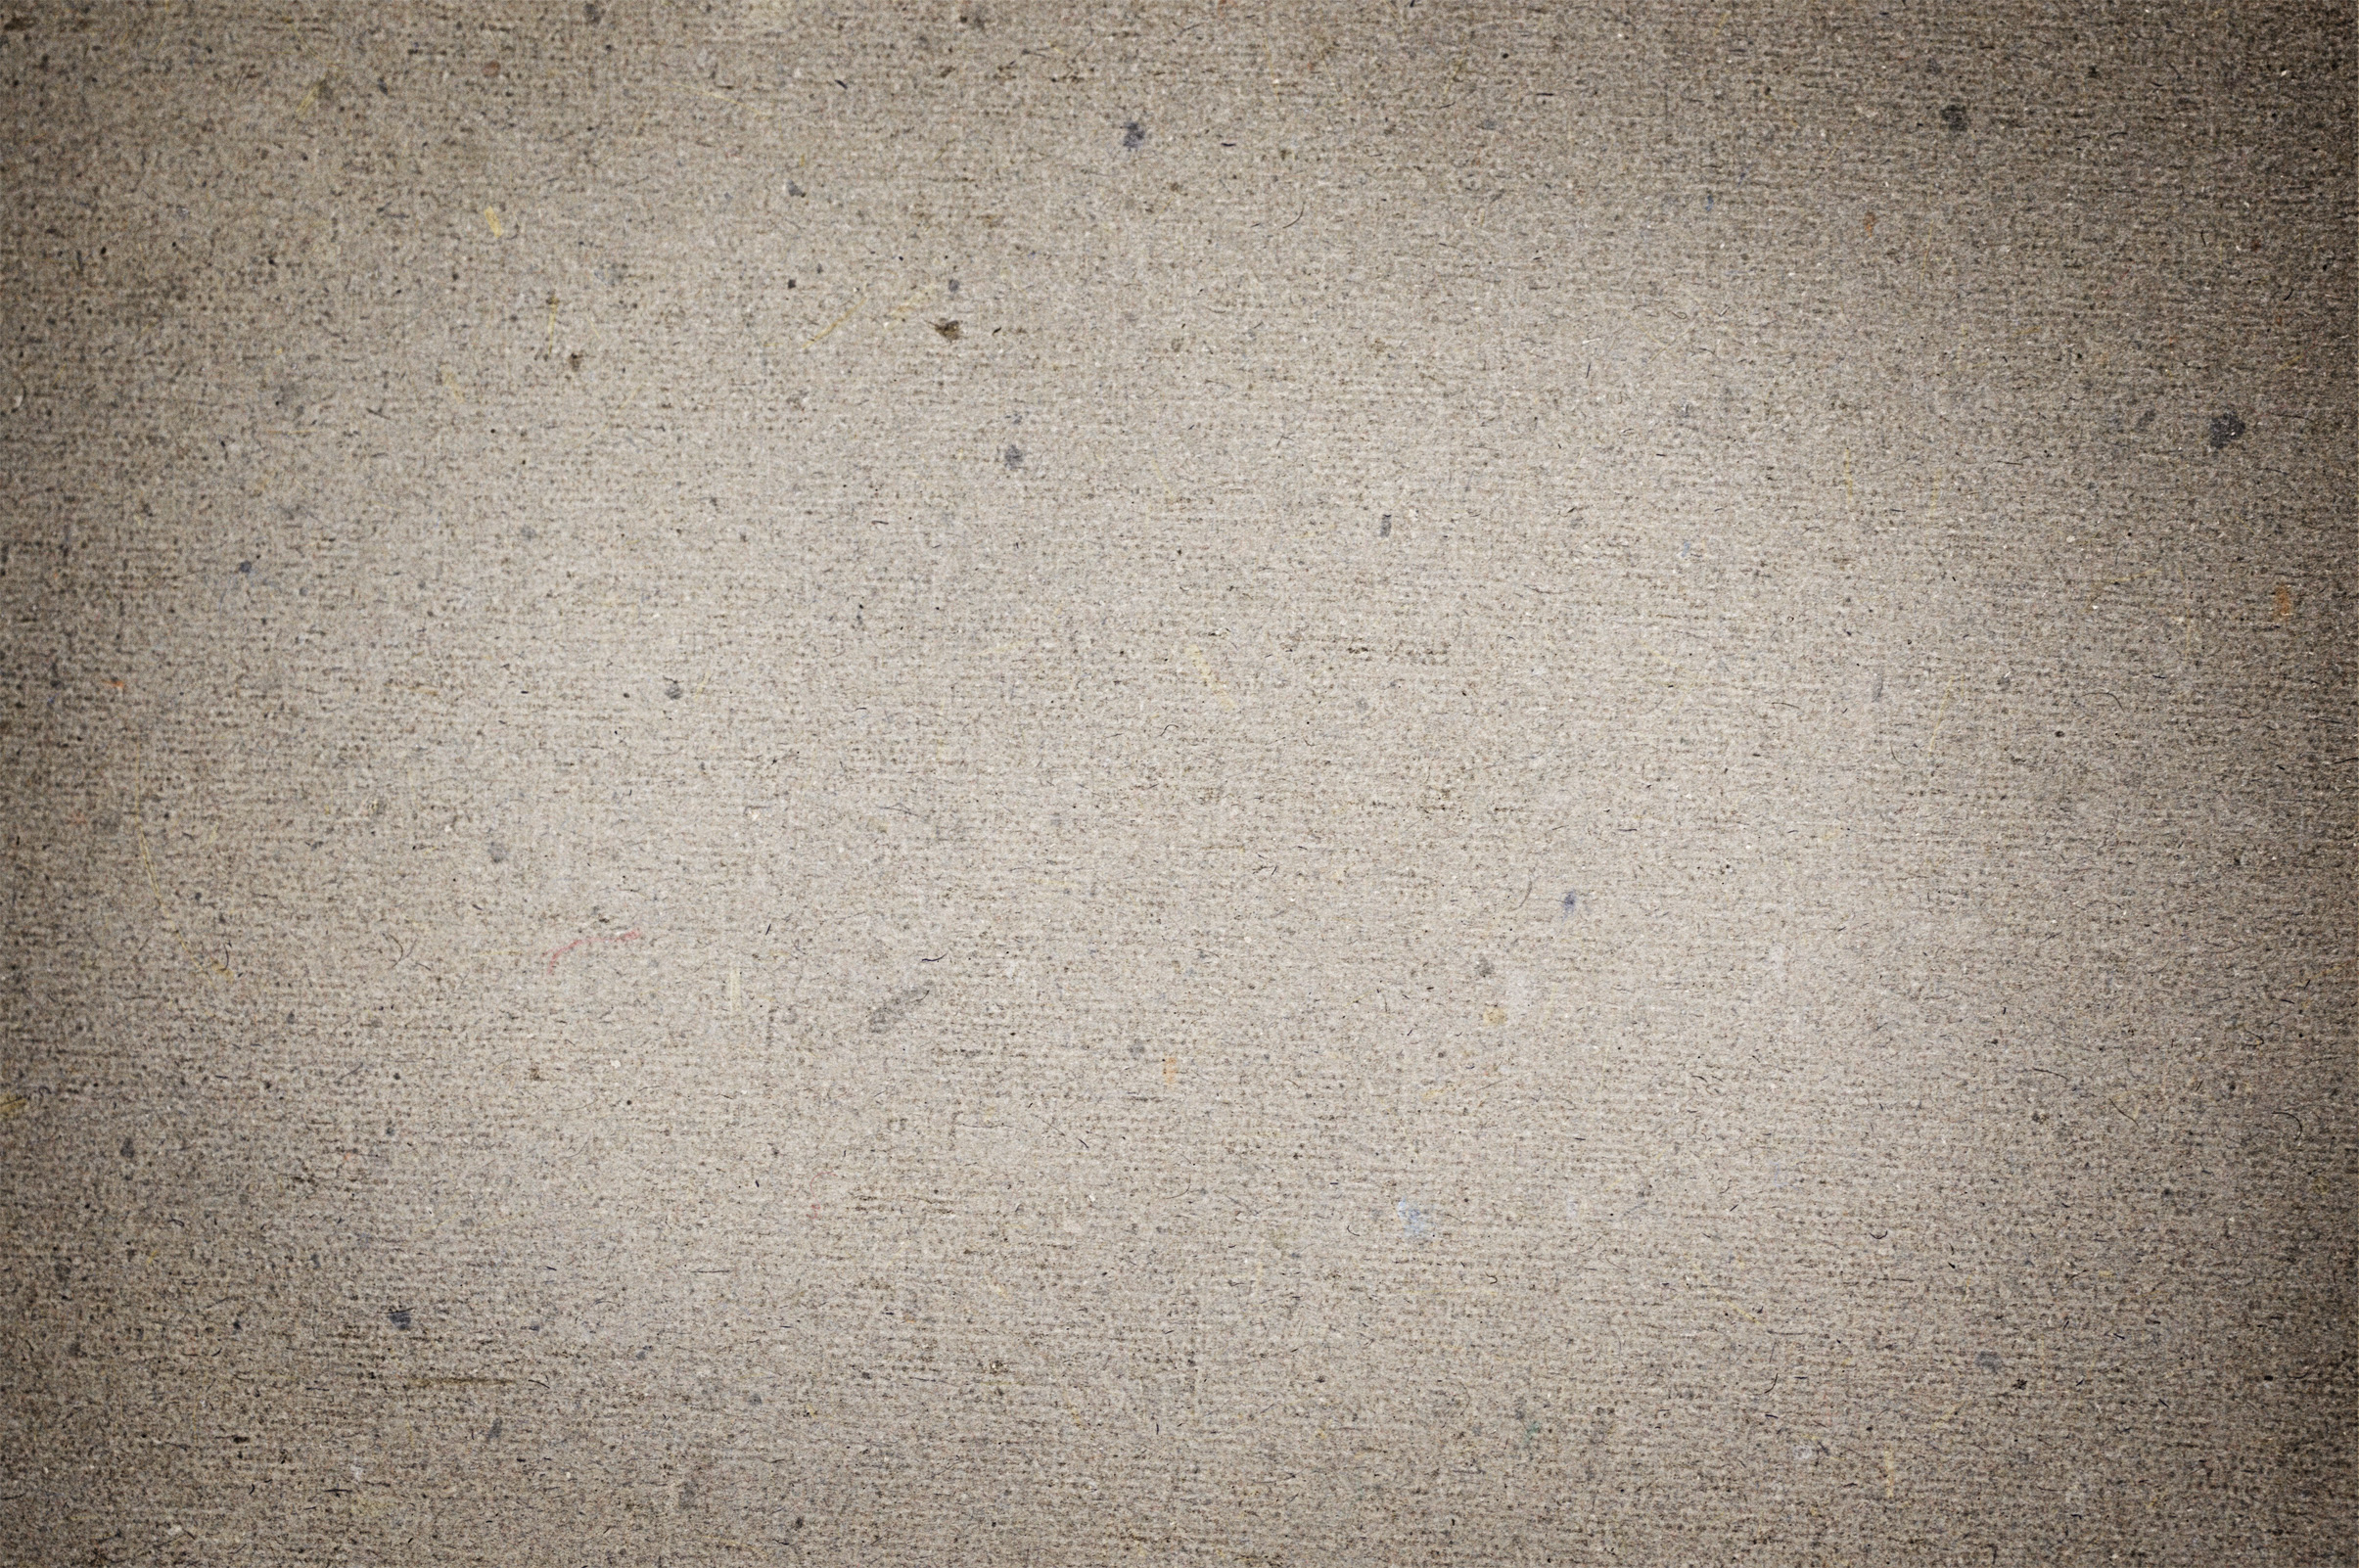 Recycled cardboard paper texture photo